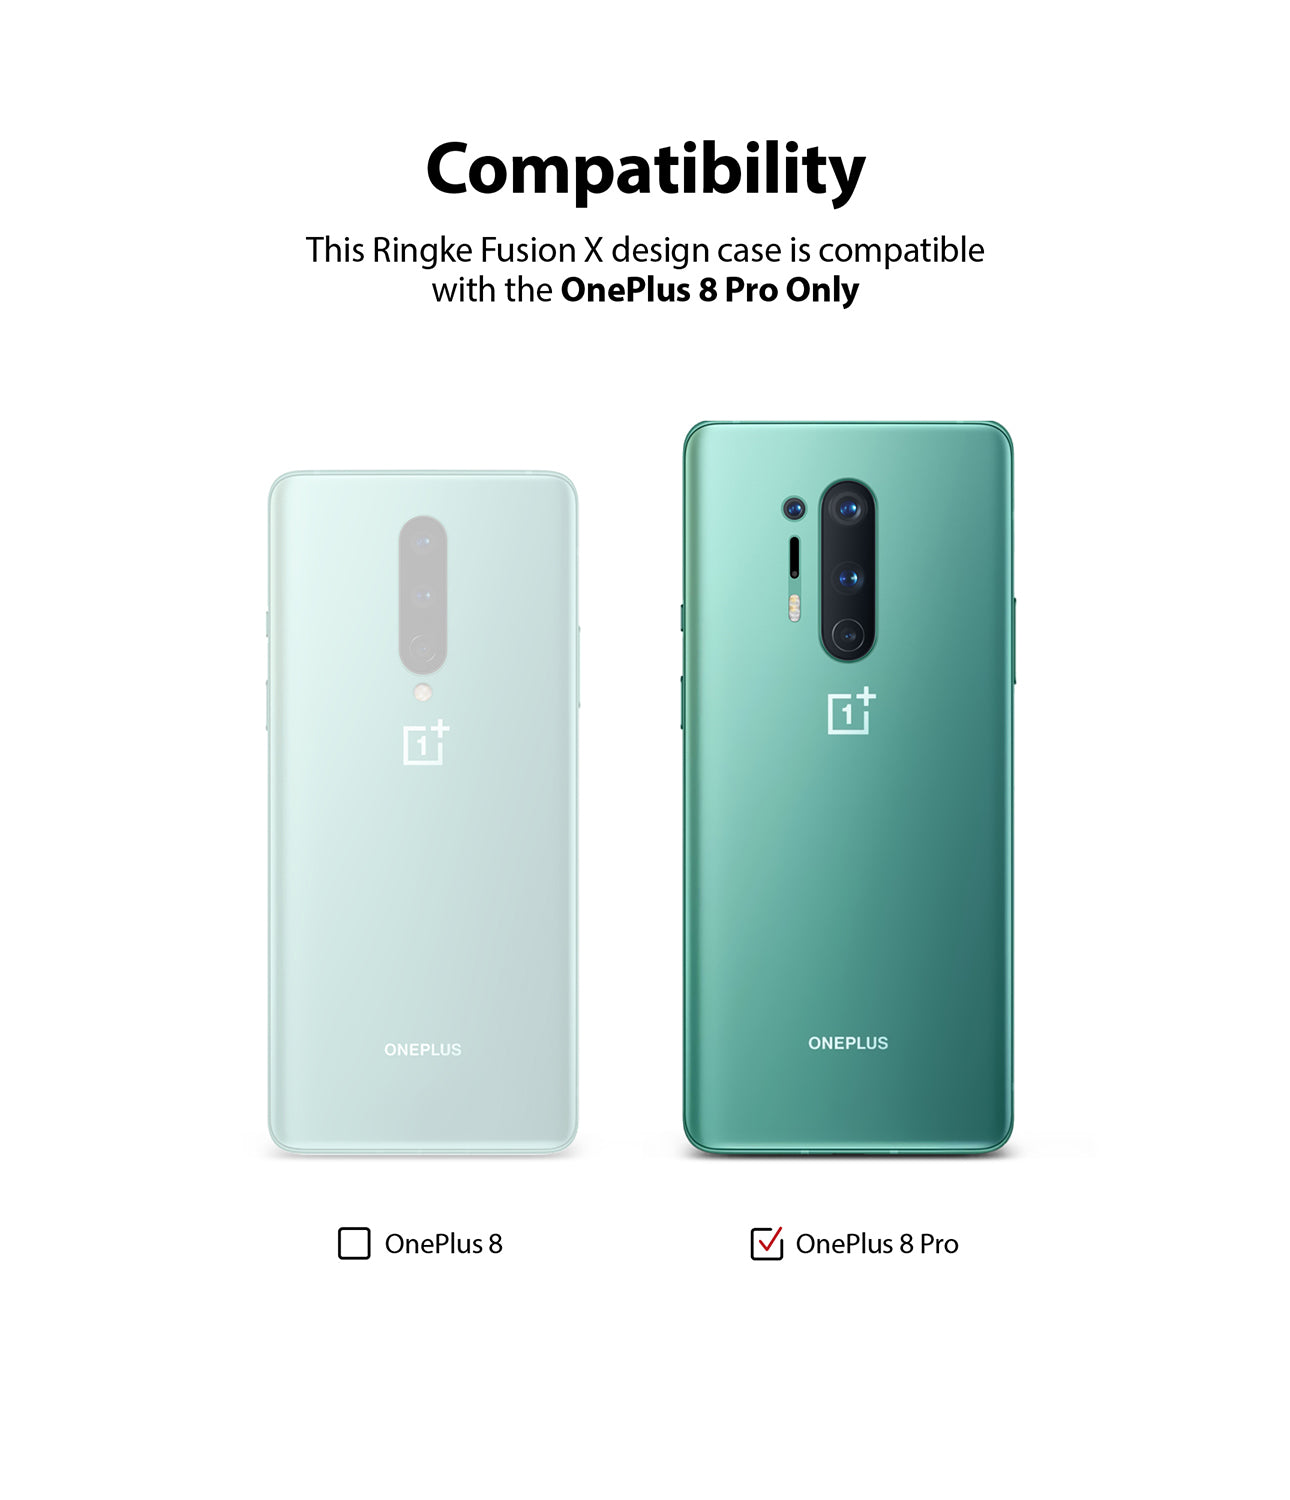 only compatible with oneplus 8 pro